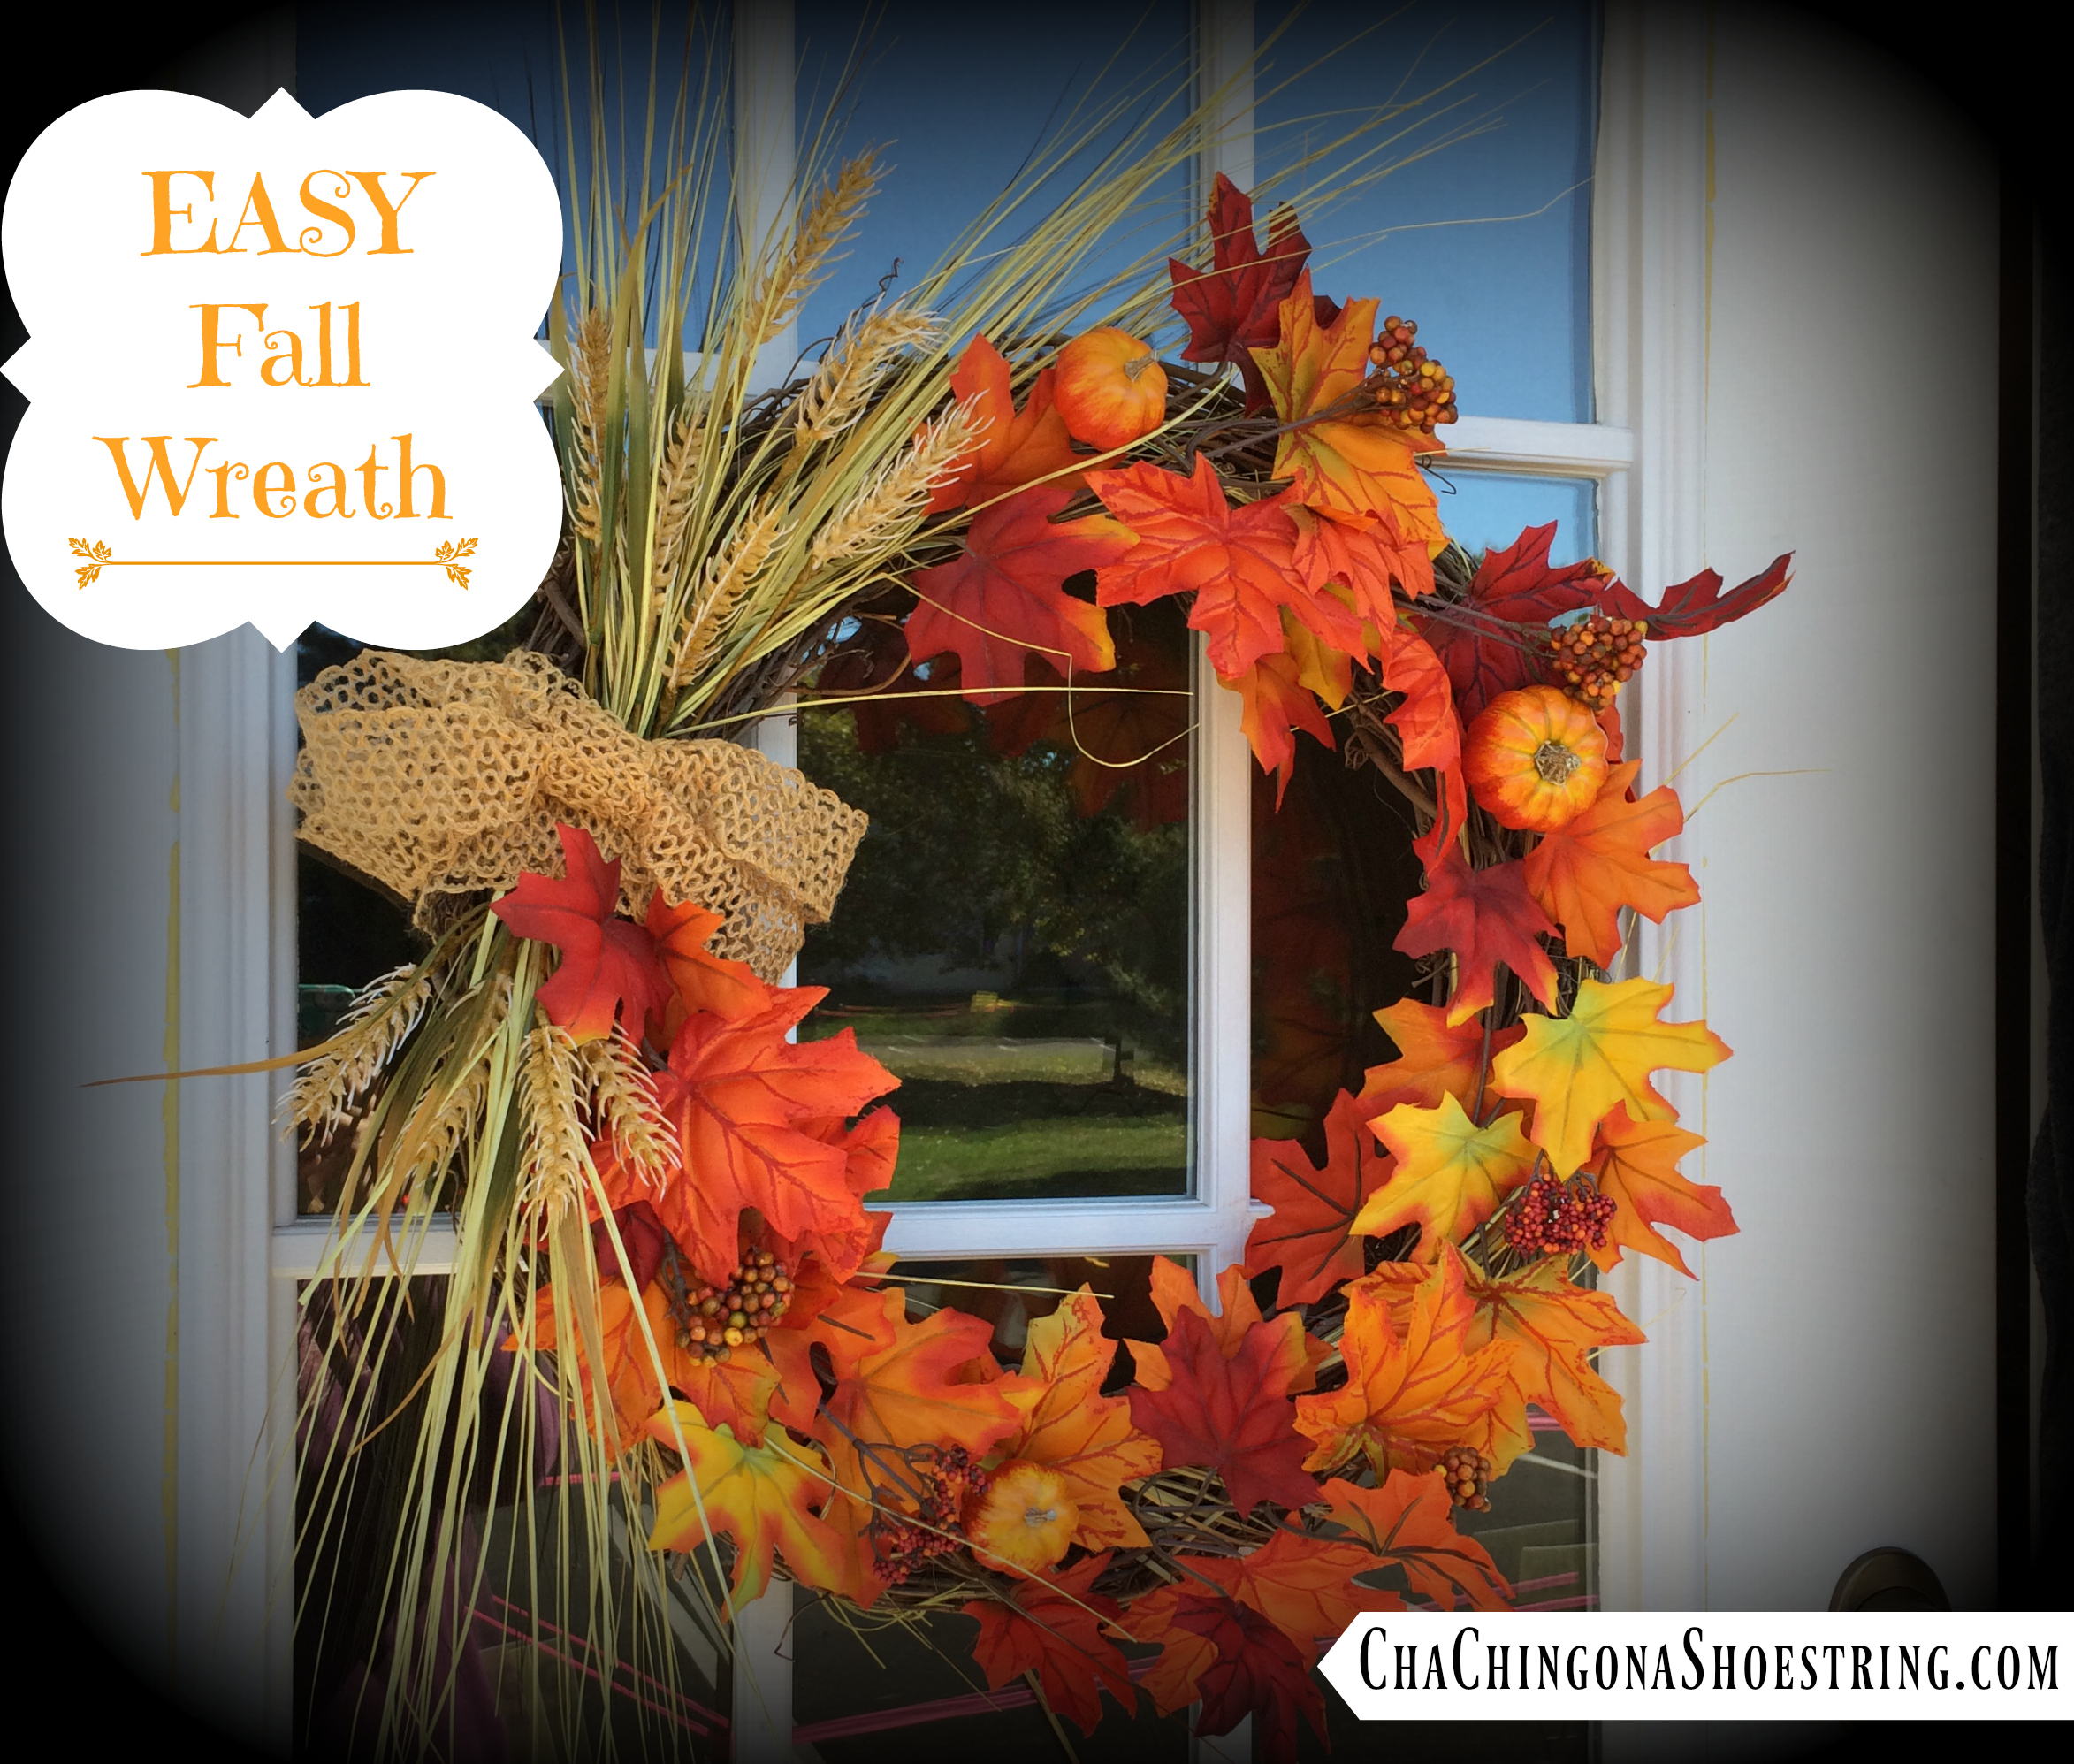 fall-wreath-fb